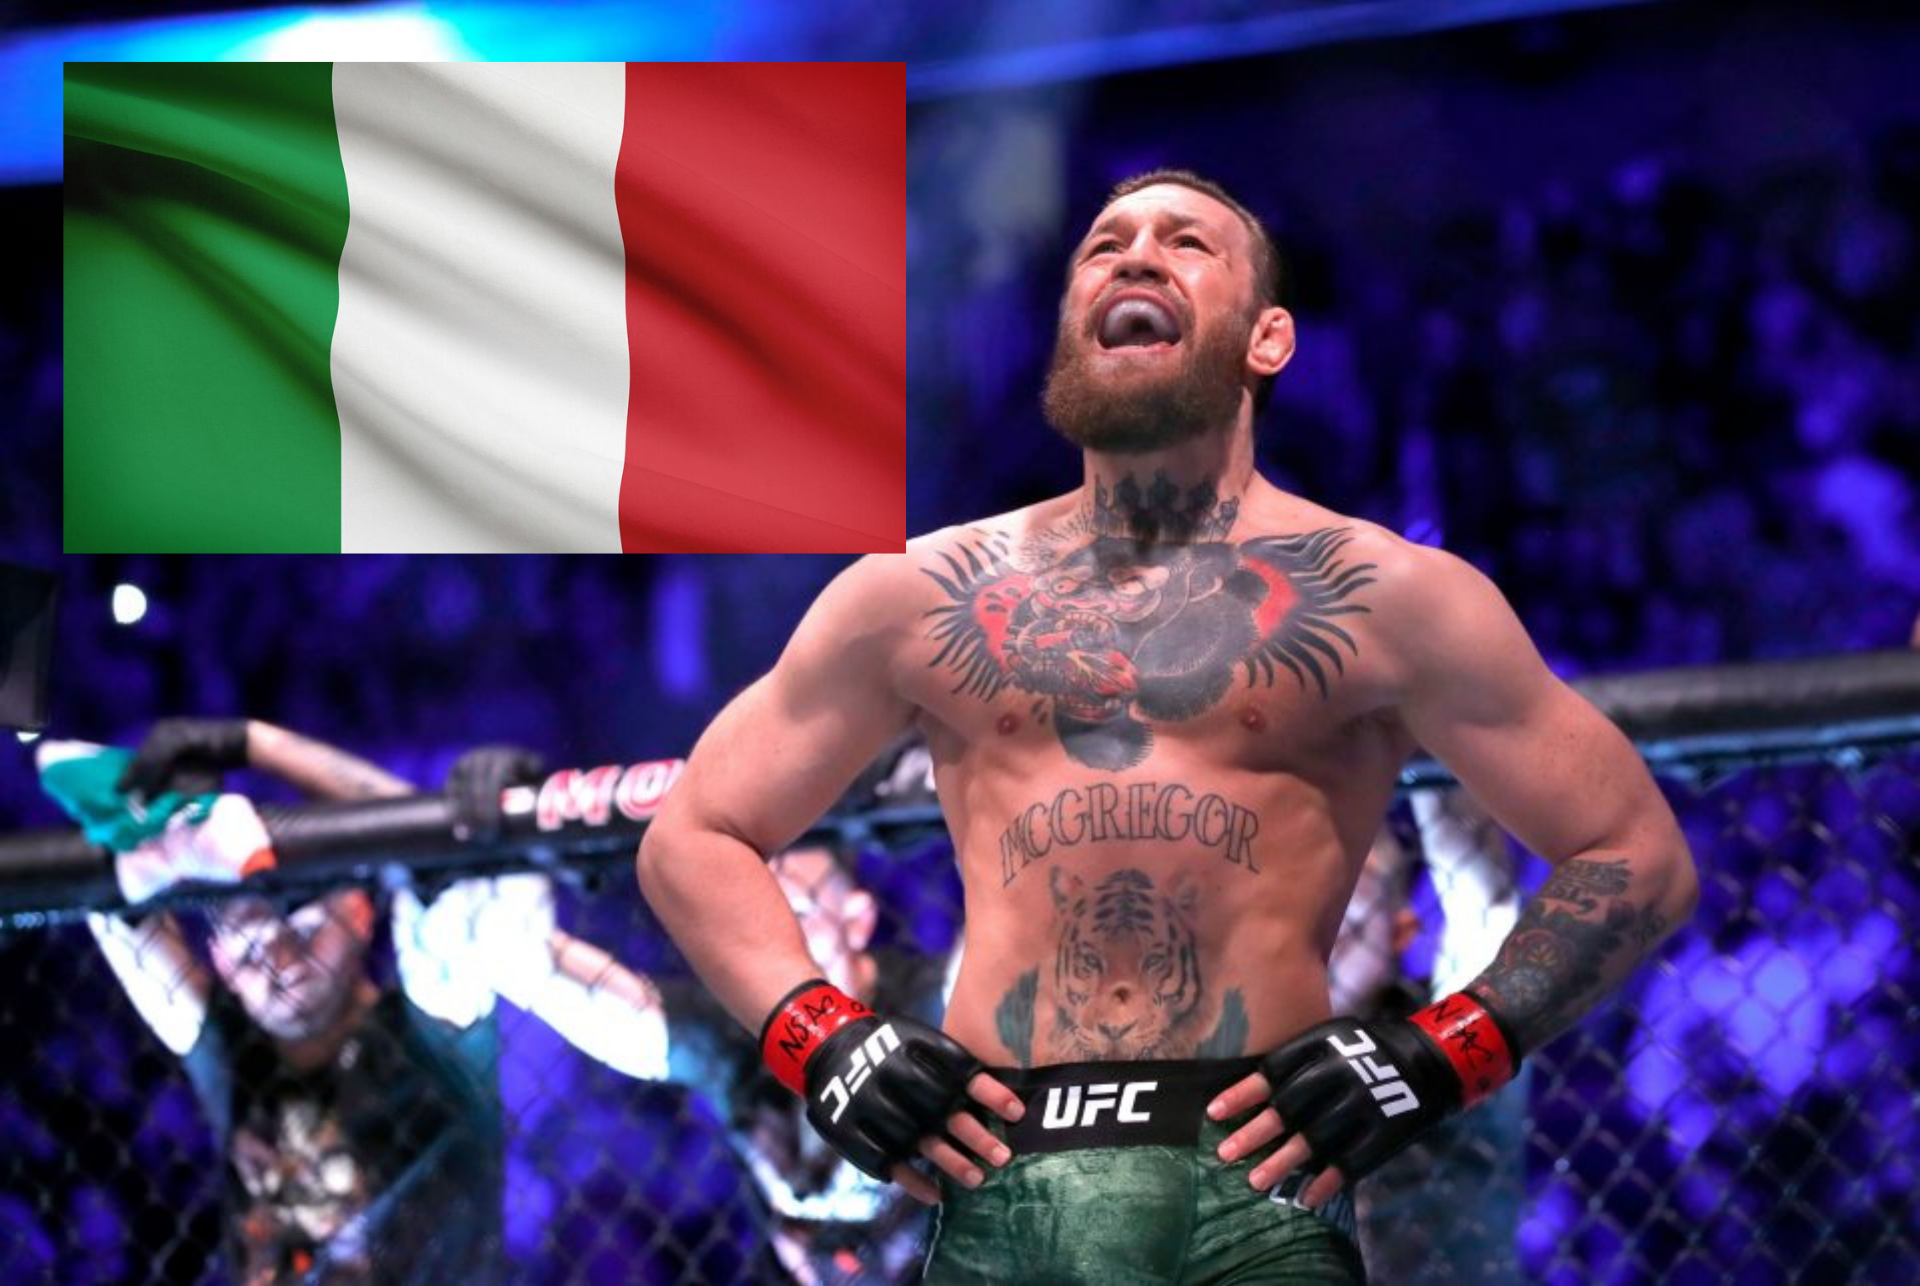 UFC News: Conor McGregor issues a plea to God to save Italy as Coronavirus crisis worsens - Conor